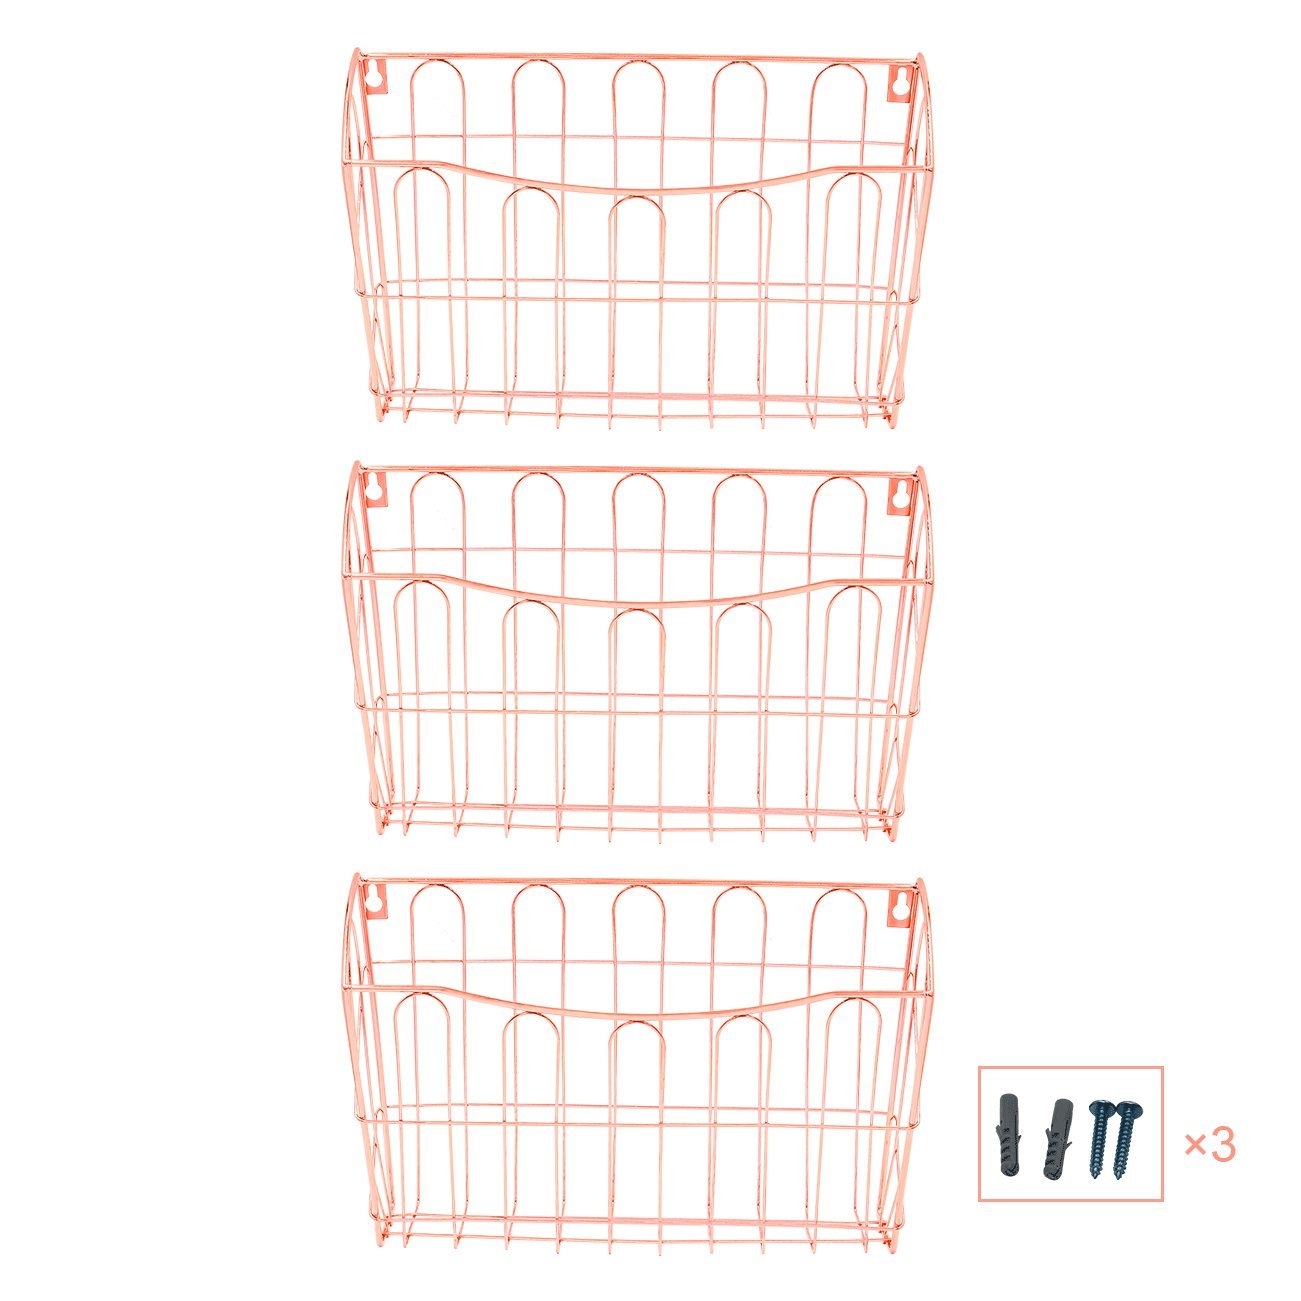 Superbpag Hanging File Organizer, 3 Pocket Wall Mount Document Letter Tray File Organizer, Rose Gold